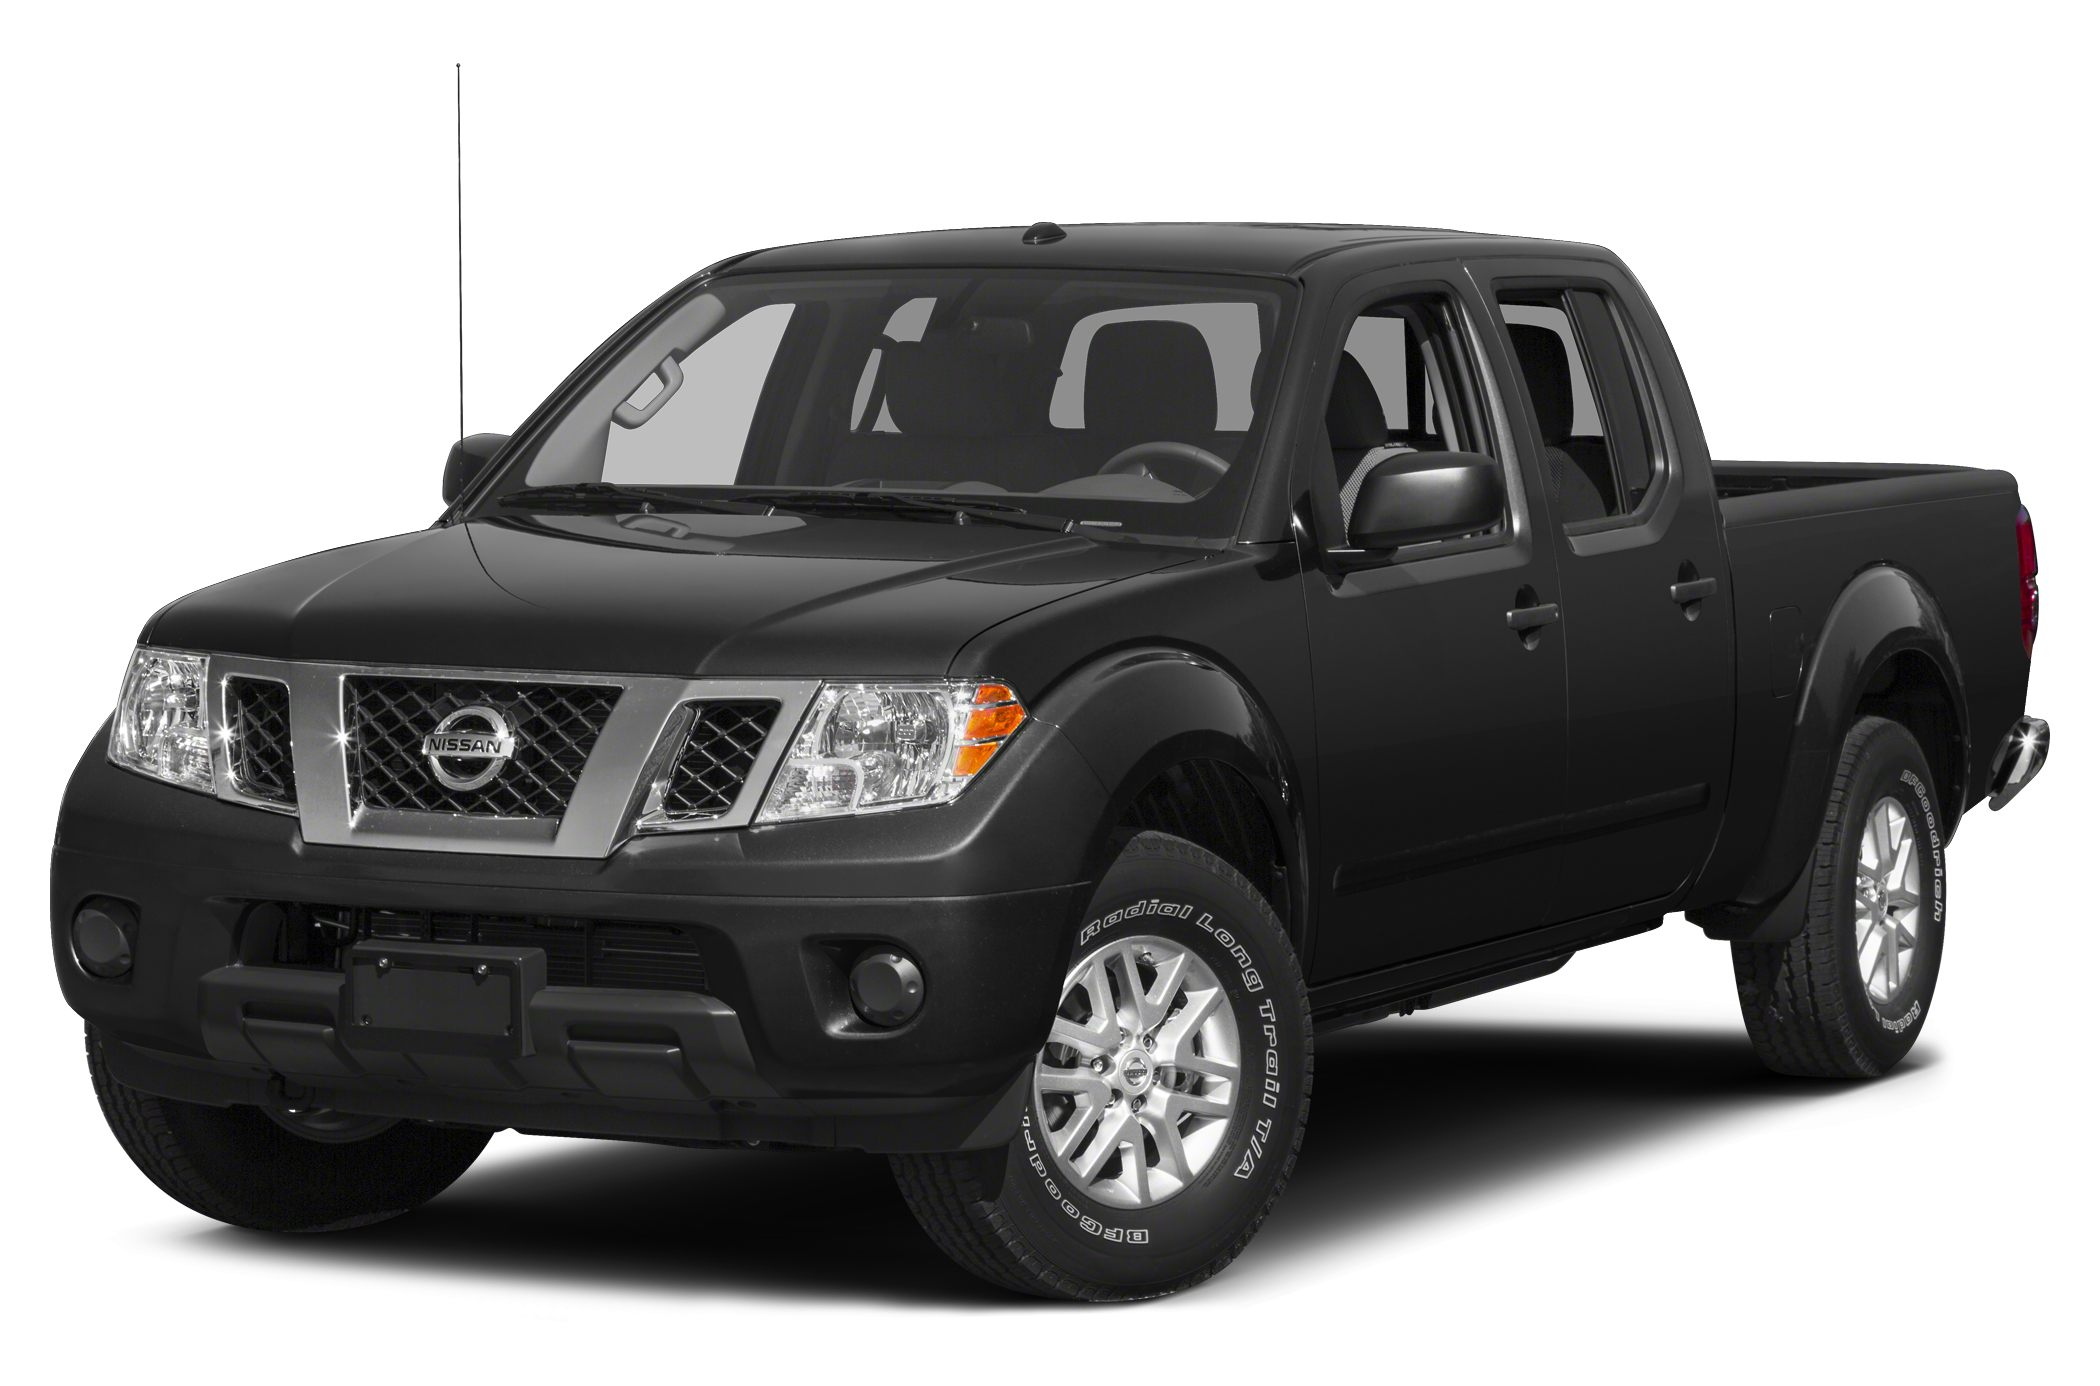 2015 Nissan Frontier SV Crew Cab Pickup for sale in Phoenix for $25,400 with 3 miles